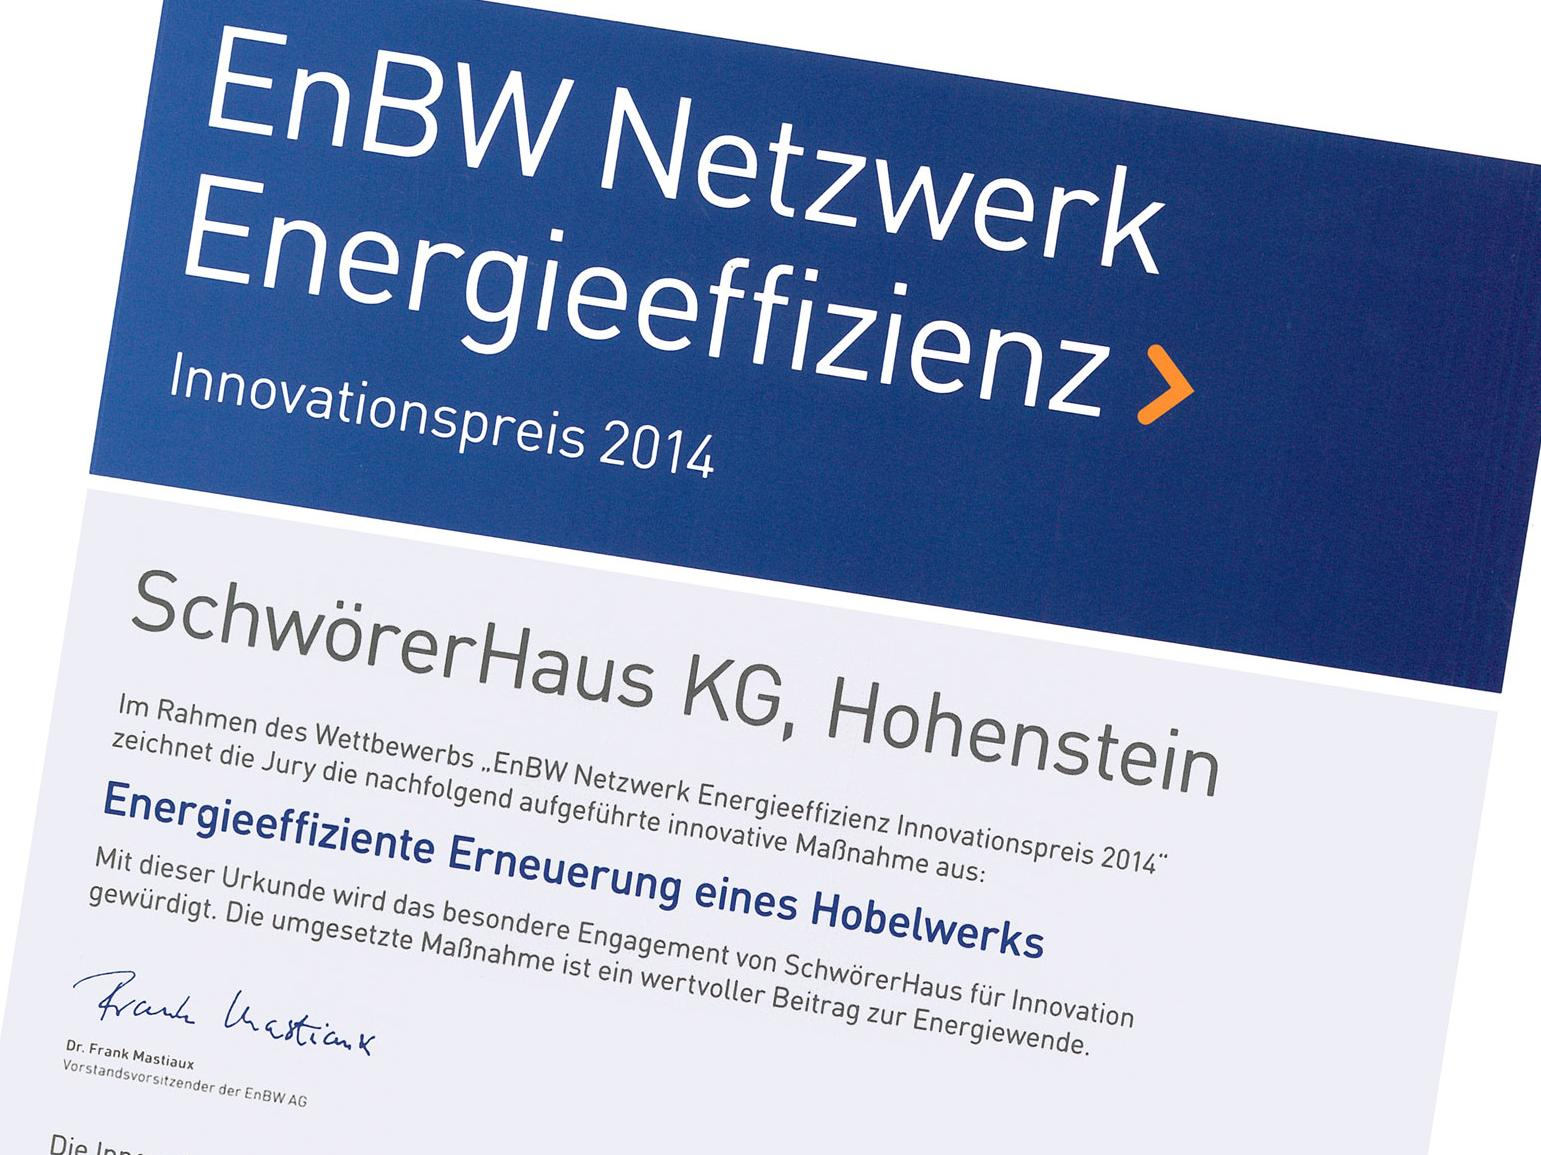 Premio per l'innovazione di EnBW Network Energy Efficiency